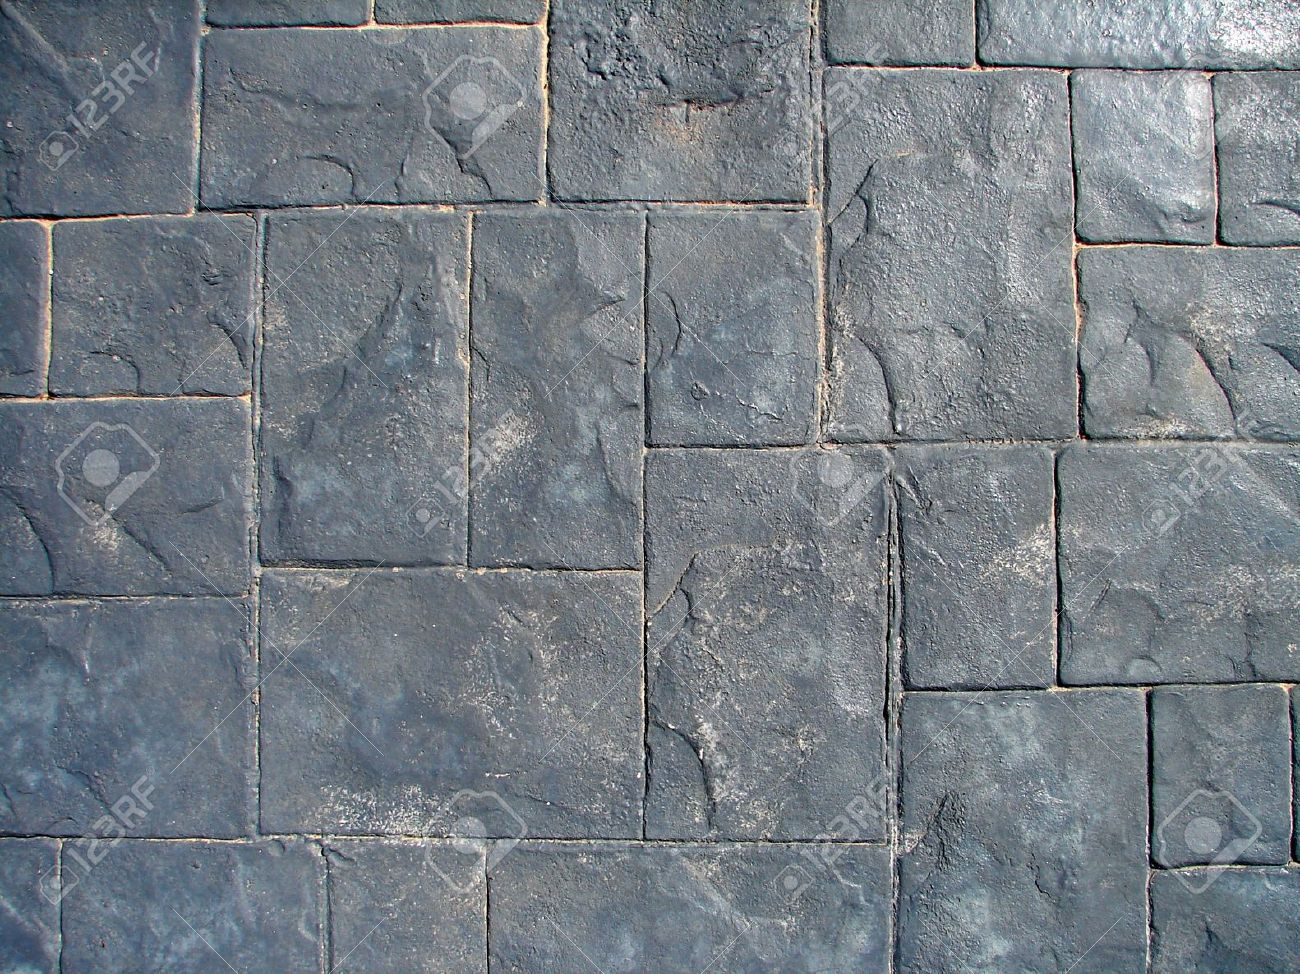 Gray Concrete Floor Tiles Texture Stock Photo Picture and Royalty